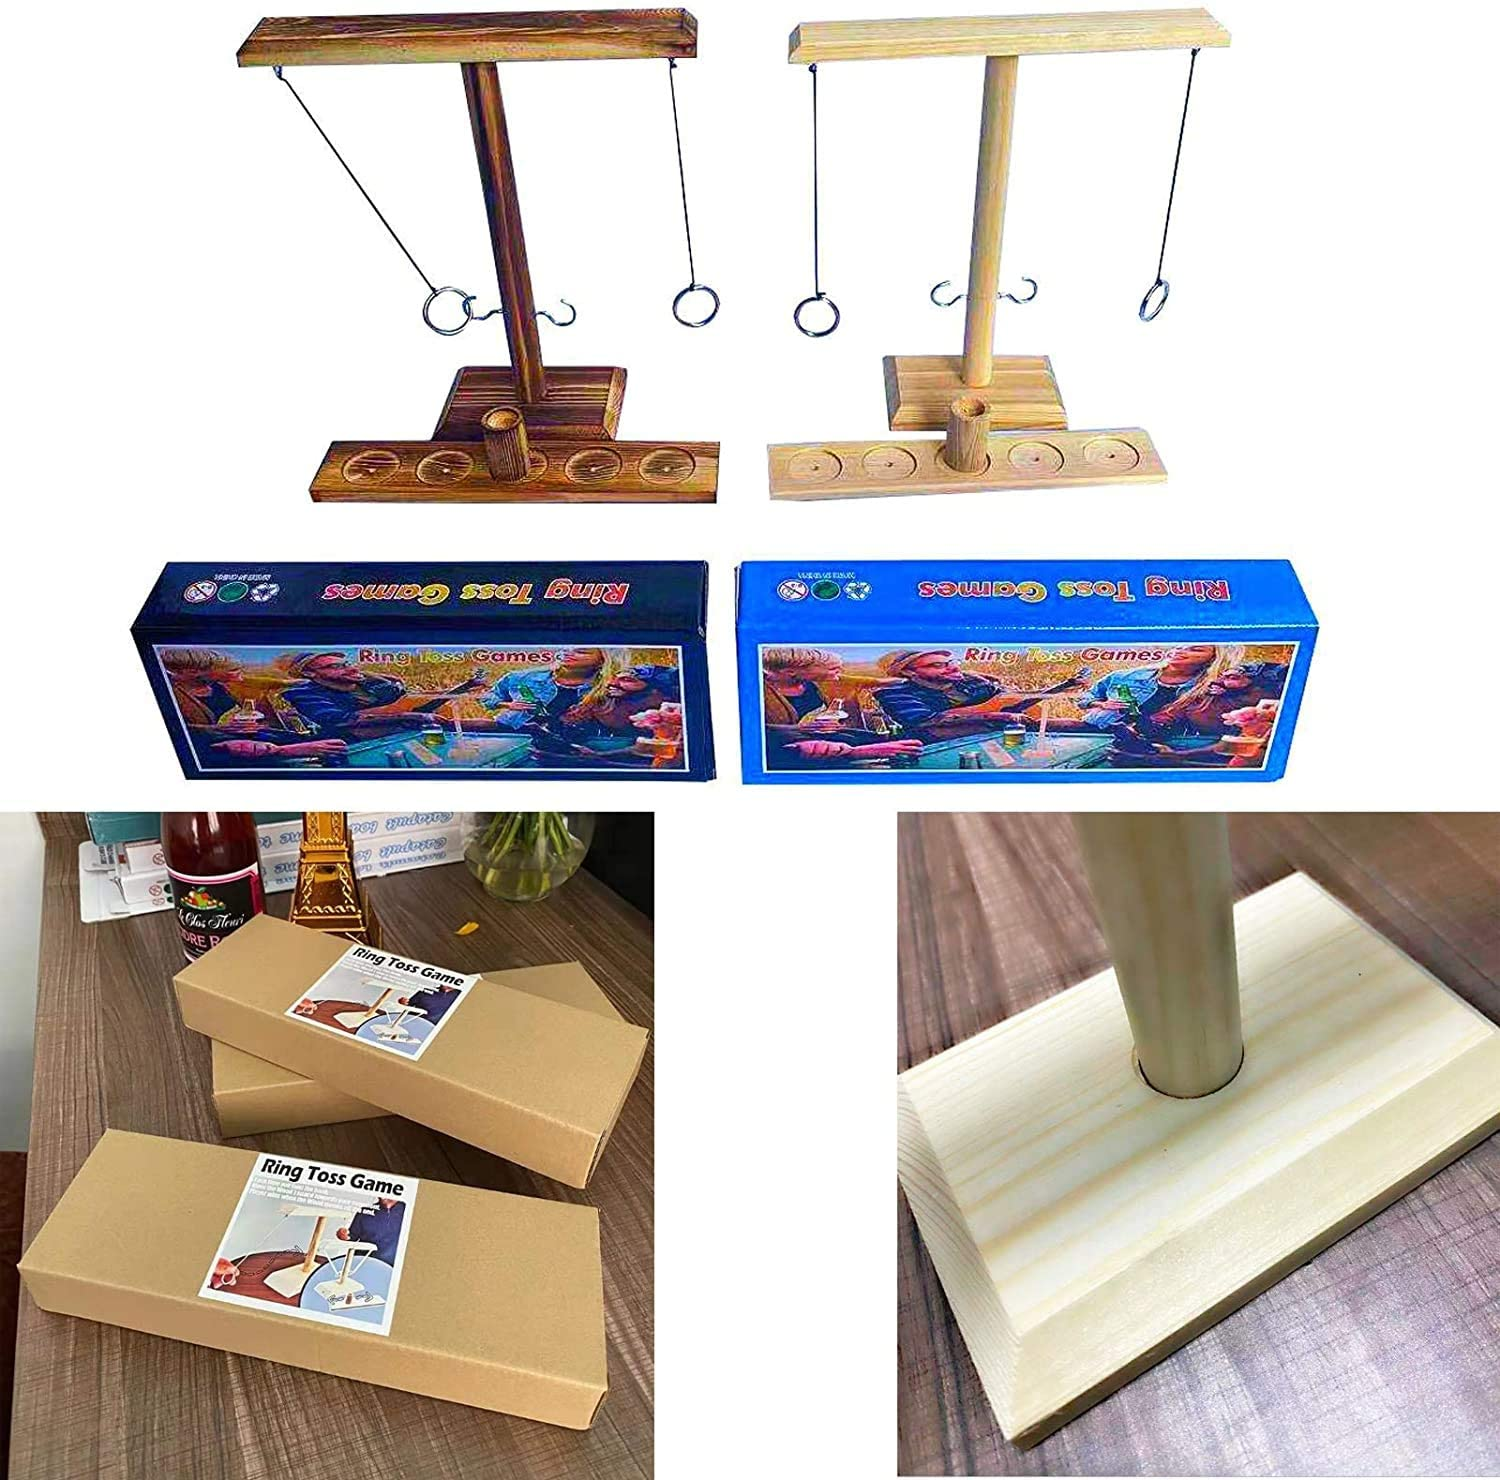 Beige Deluxe Handmade Wooden Throwing Game Handheld Games w// Shot Ladder Bundle Fast-paced Interactive Game Toys for Home Travel Bars Drinking Craggy Games Toys Ring Toss Game